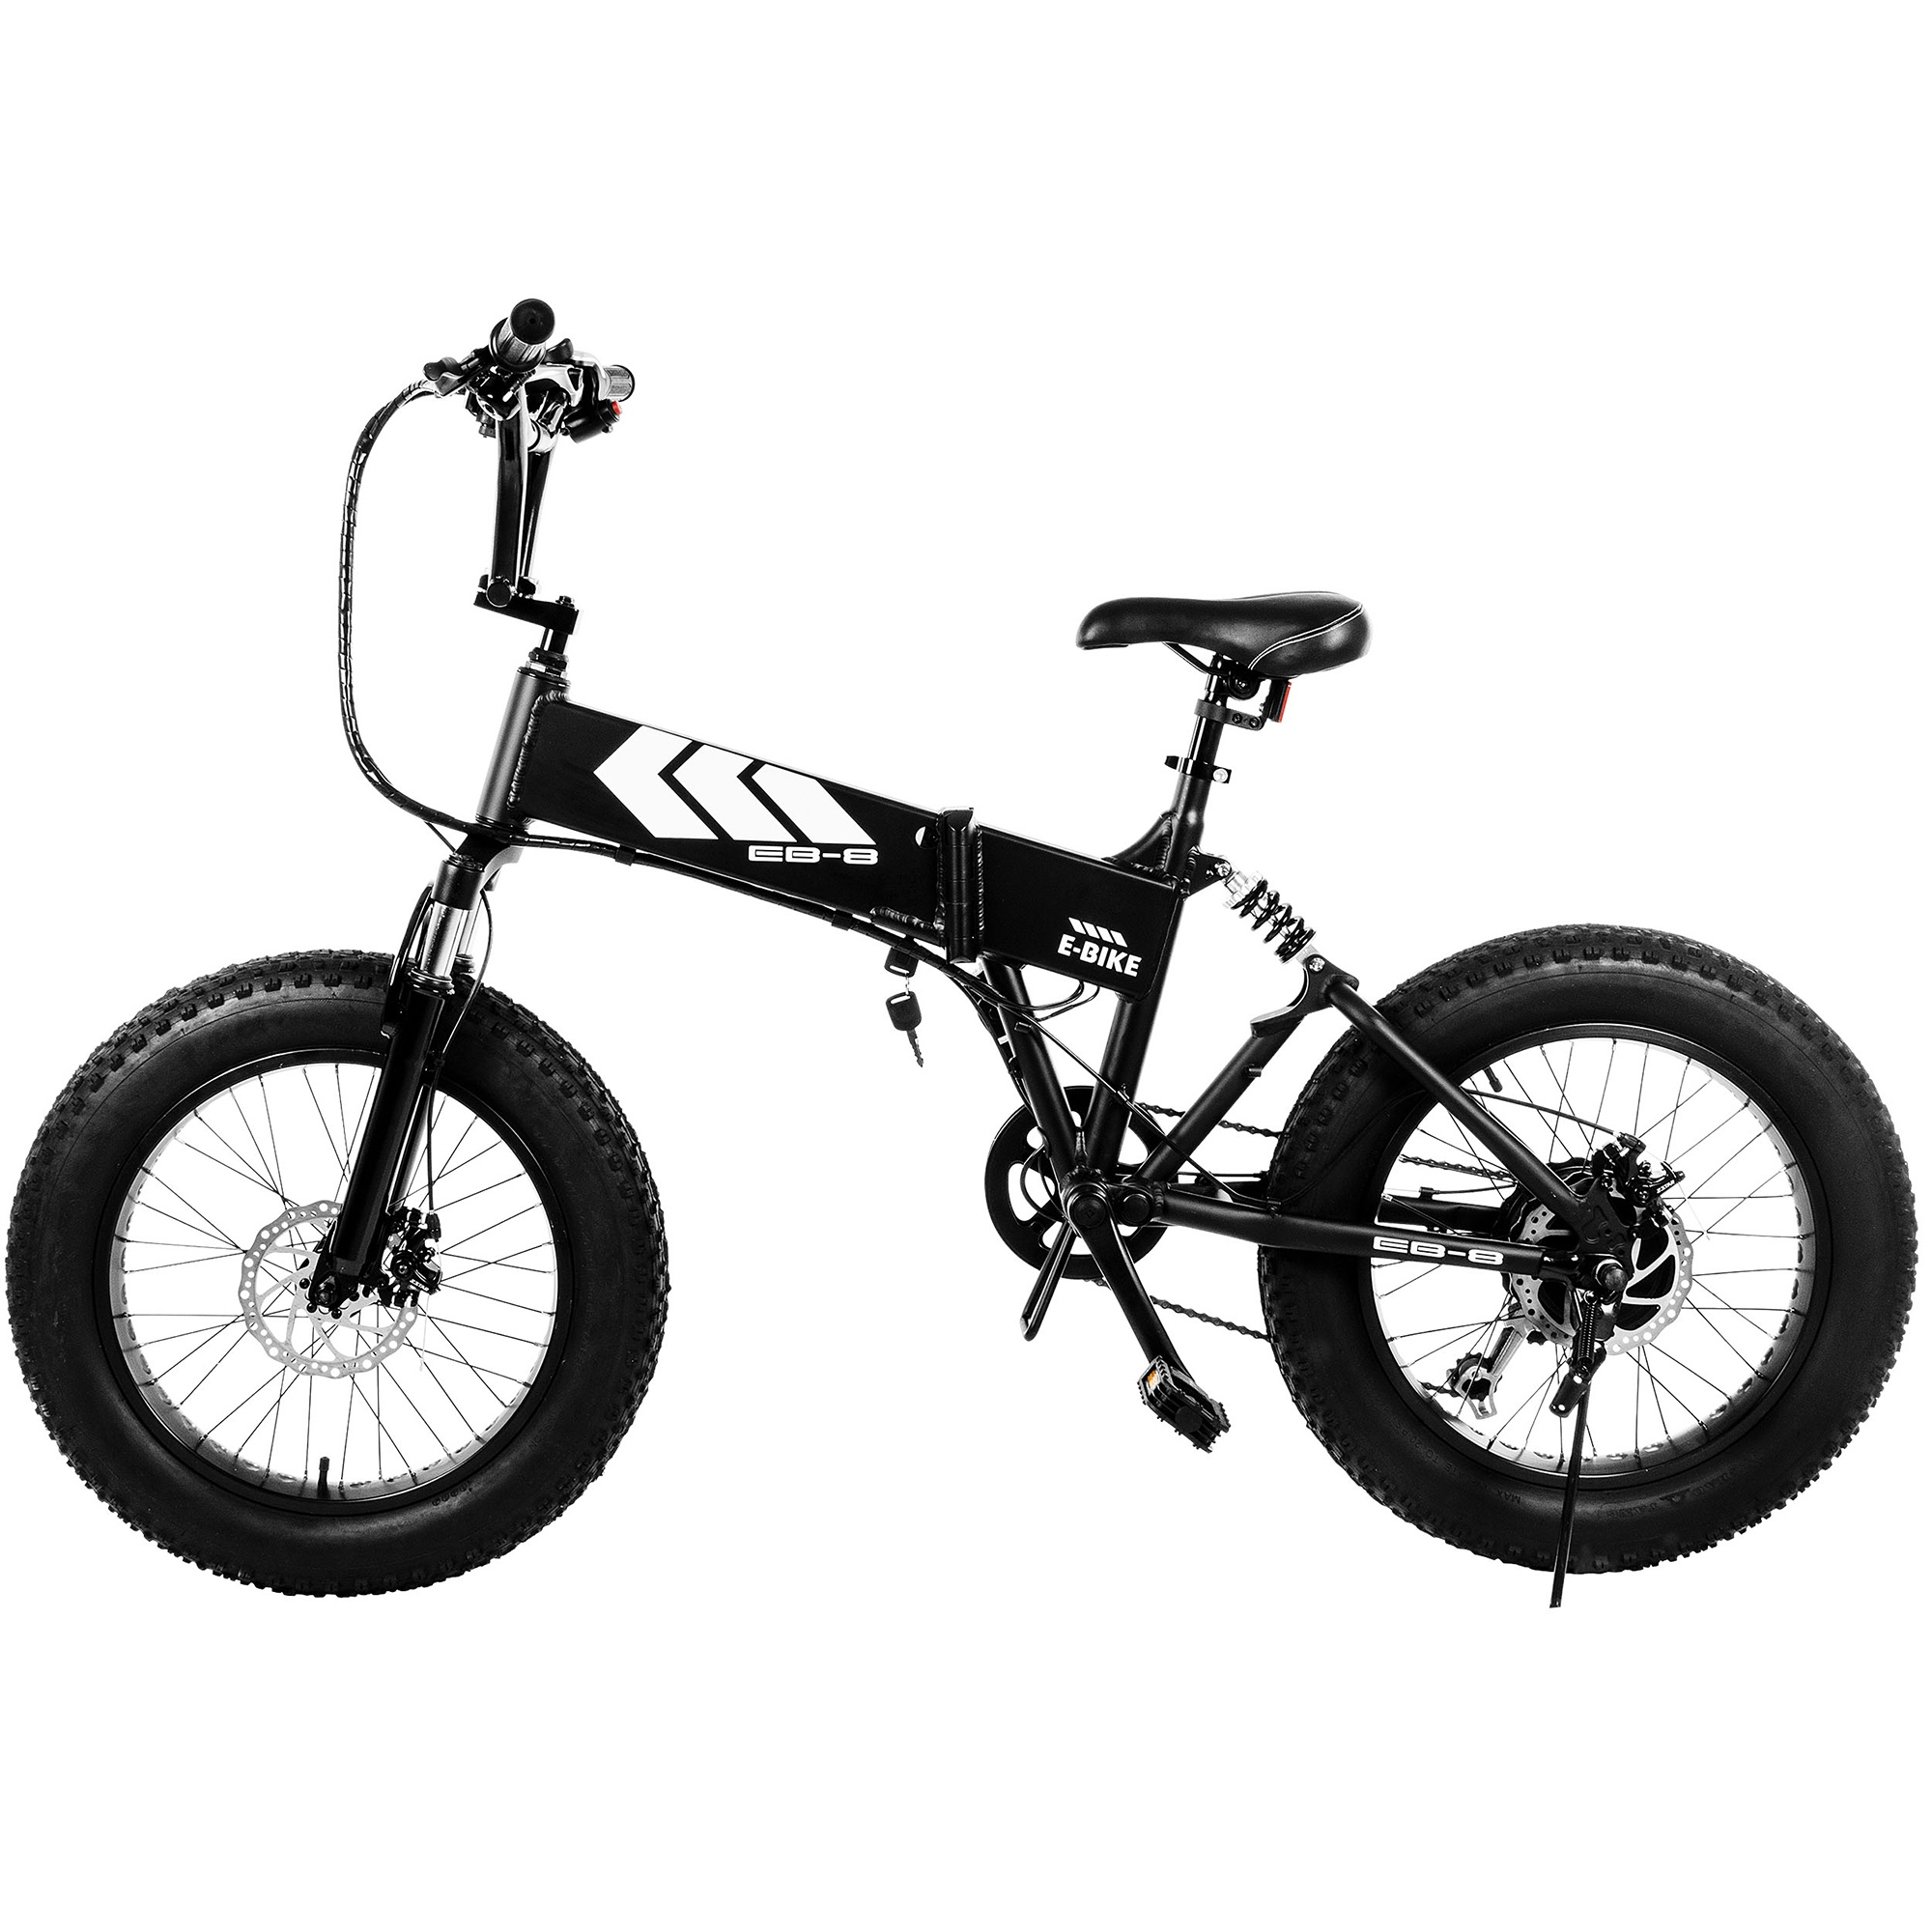 af721c84ca1 Swagtron EB8 Foldable Fat Tire All-Terrain eBike — Swagtron